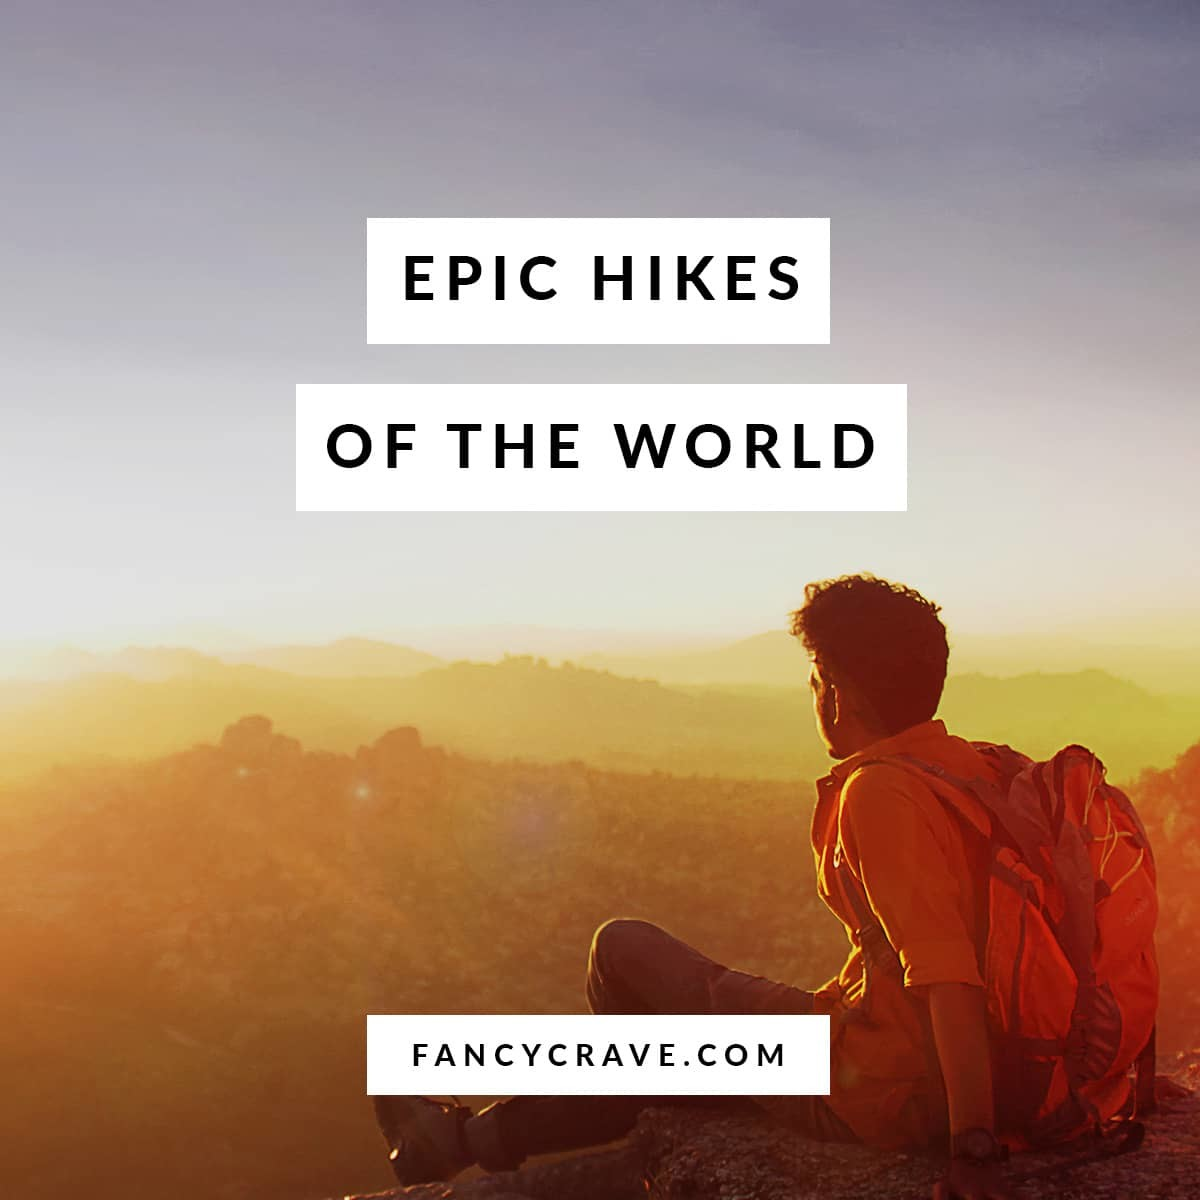 Epic-Hikes-of-the-World-min